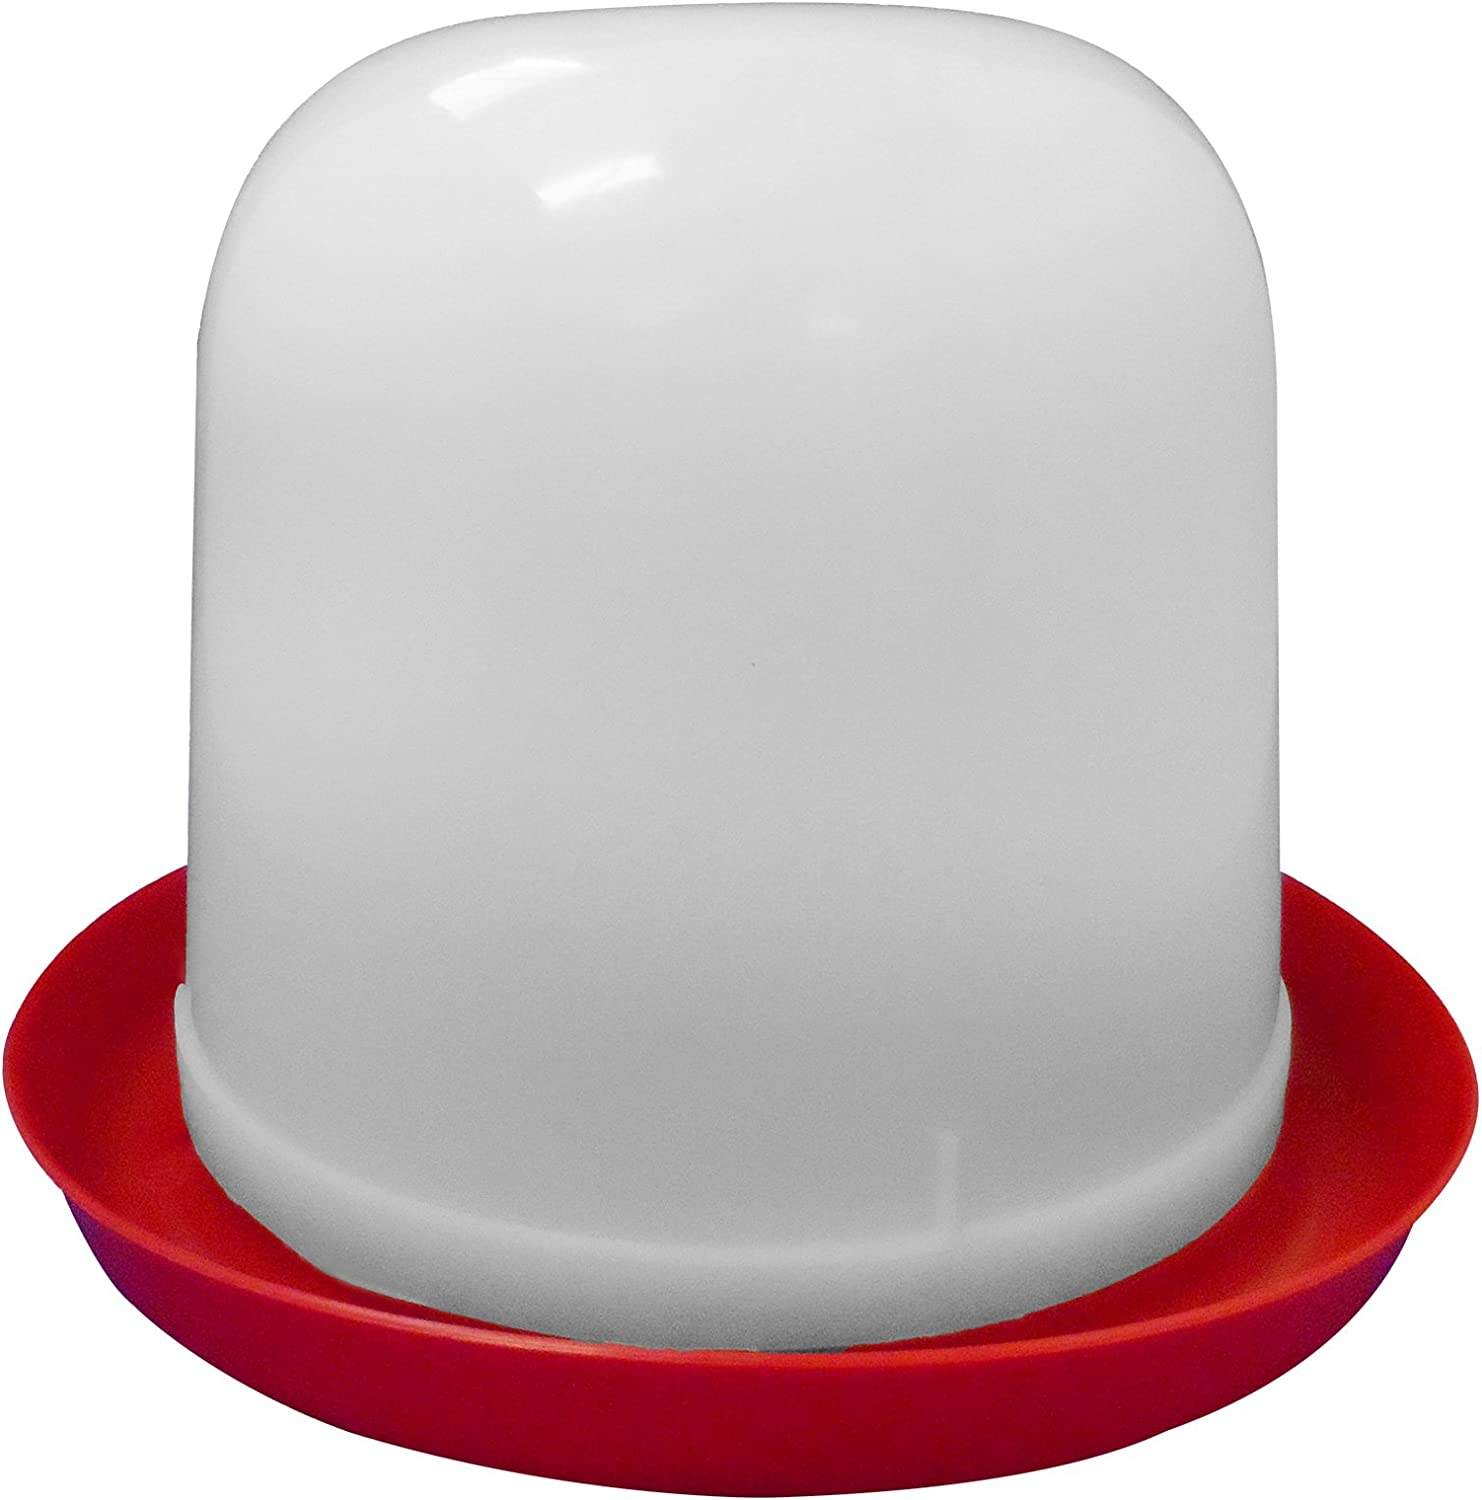 Wolseley 1.5LT Red /& White PLASTIC DOME POULTRY DRINKER Anti Perch Ideal for up to 40 Chicks AND Tigerbox/® Antibacterial Pen.